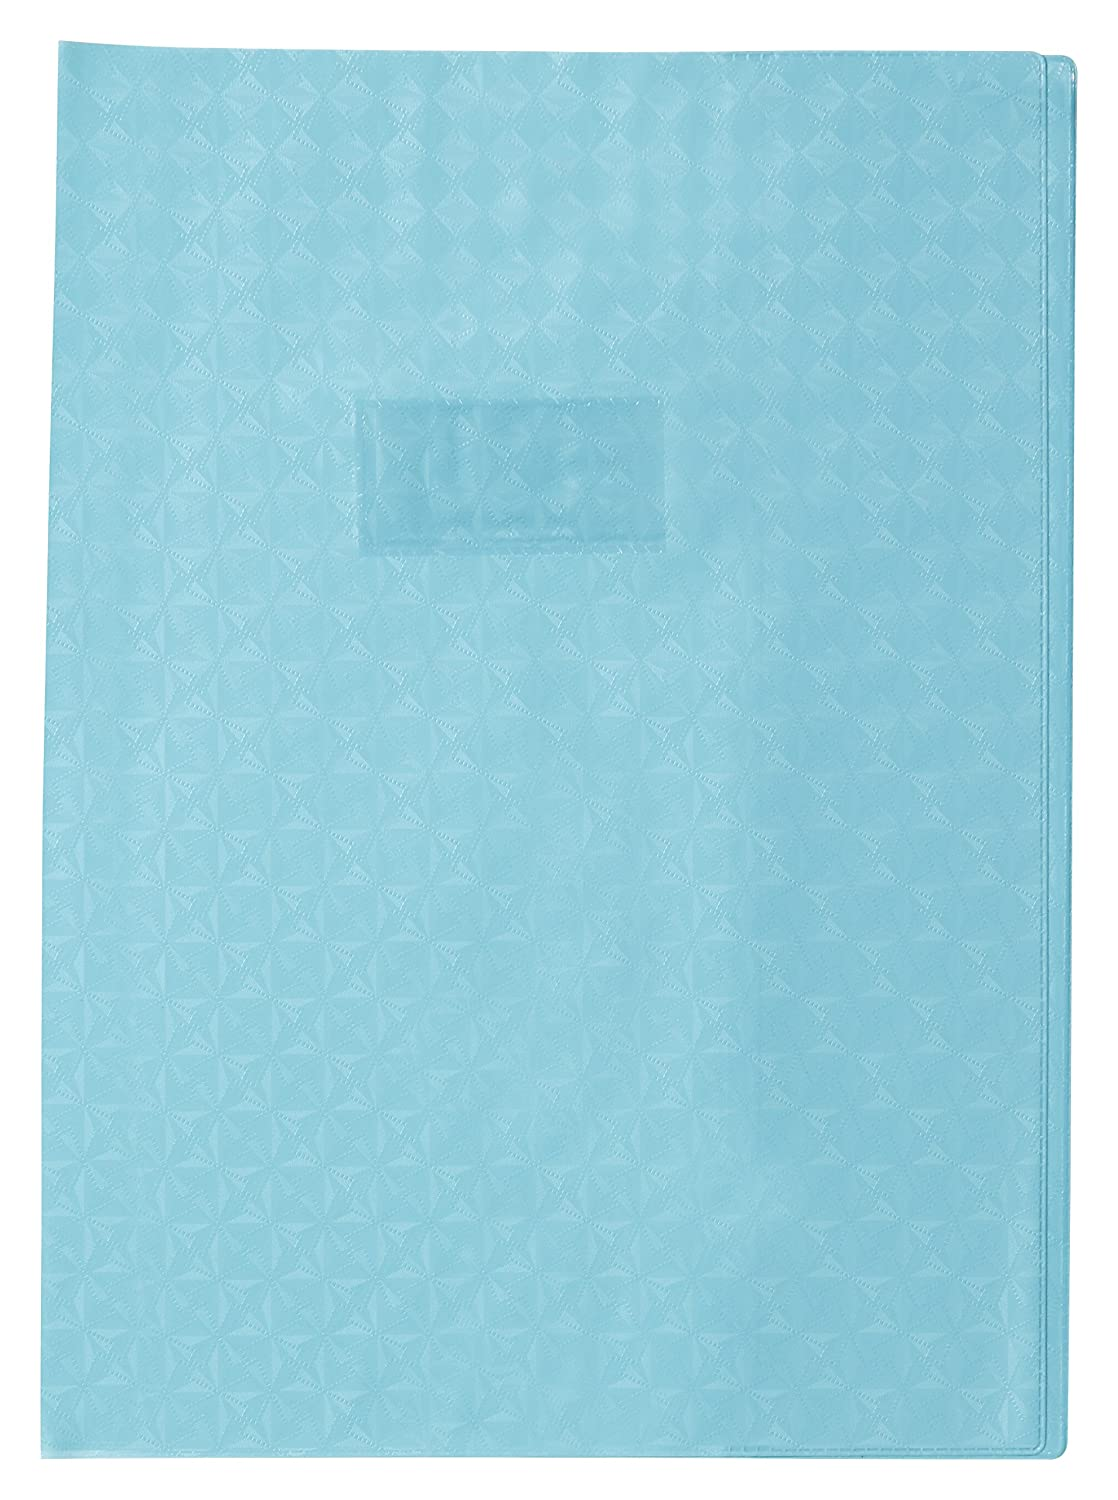 Red Label Holder Label Holder Clairefontaine A4 PVC Exercise Book Protector Diamond effect